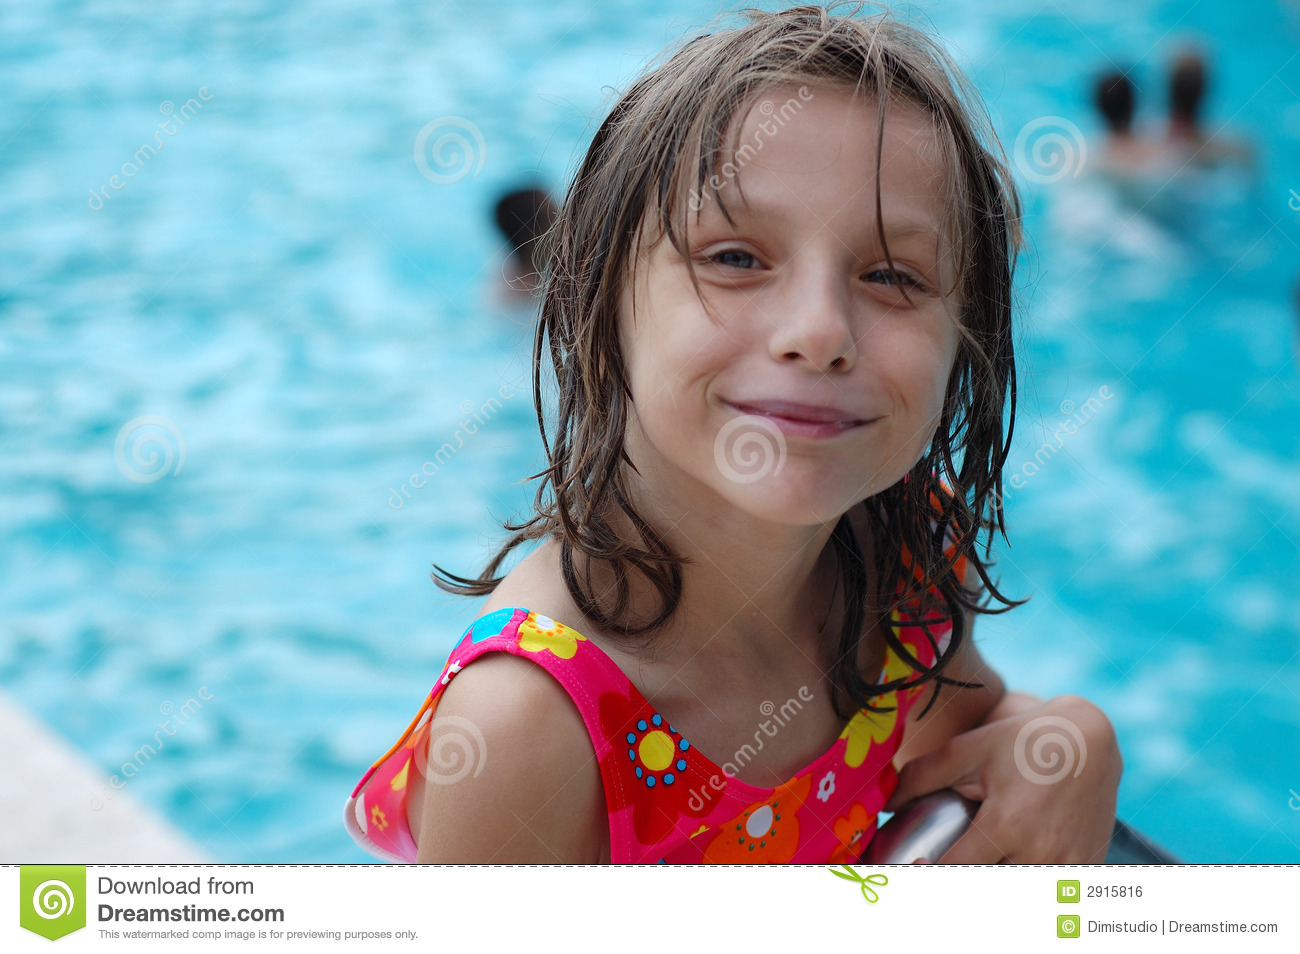 Cute young girl by pool royalty free stock image image for Cute pool pictures